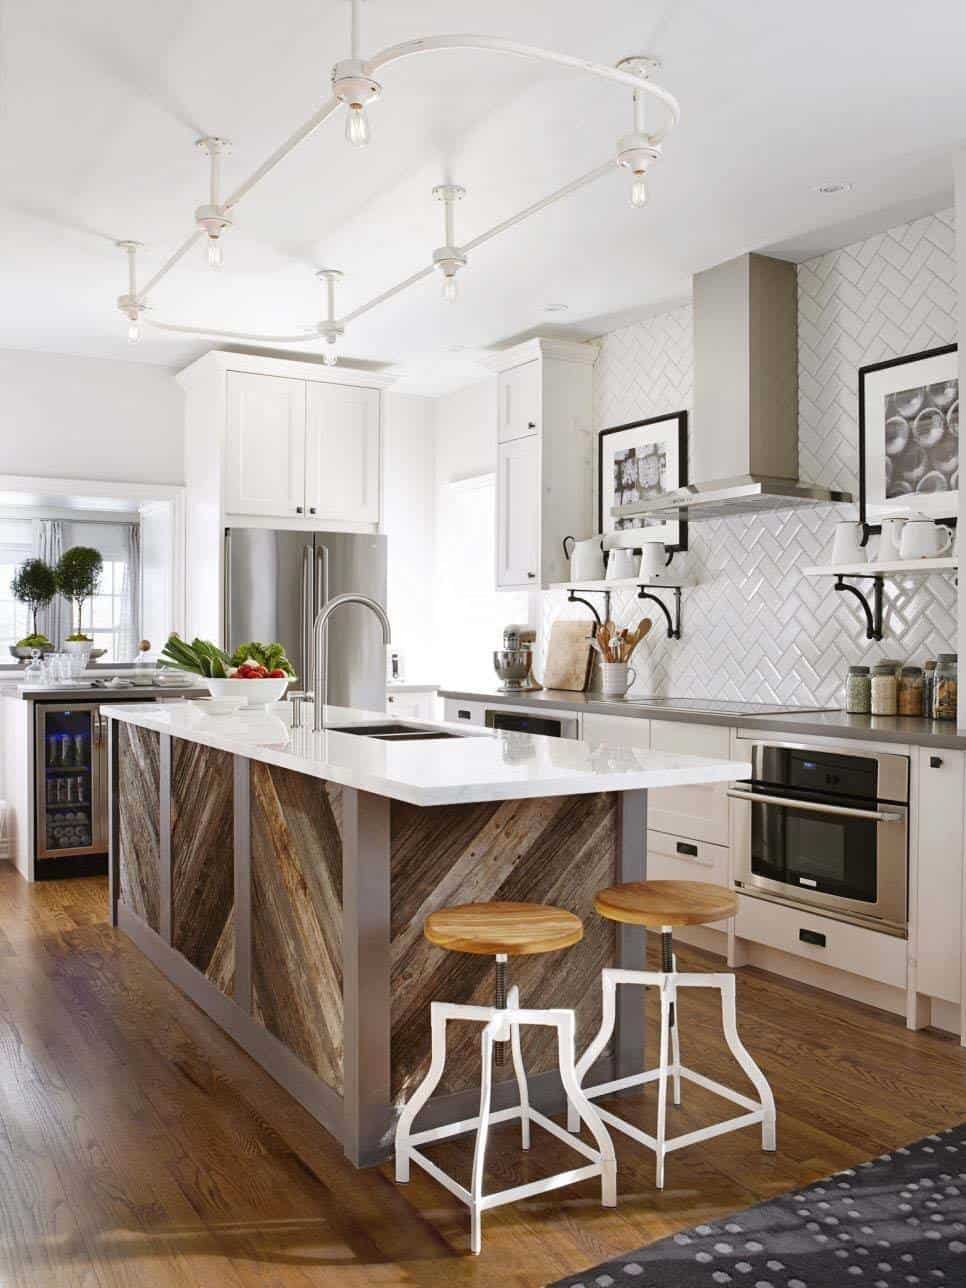 Kitchen Island Ideas 01 1 Kindesign